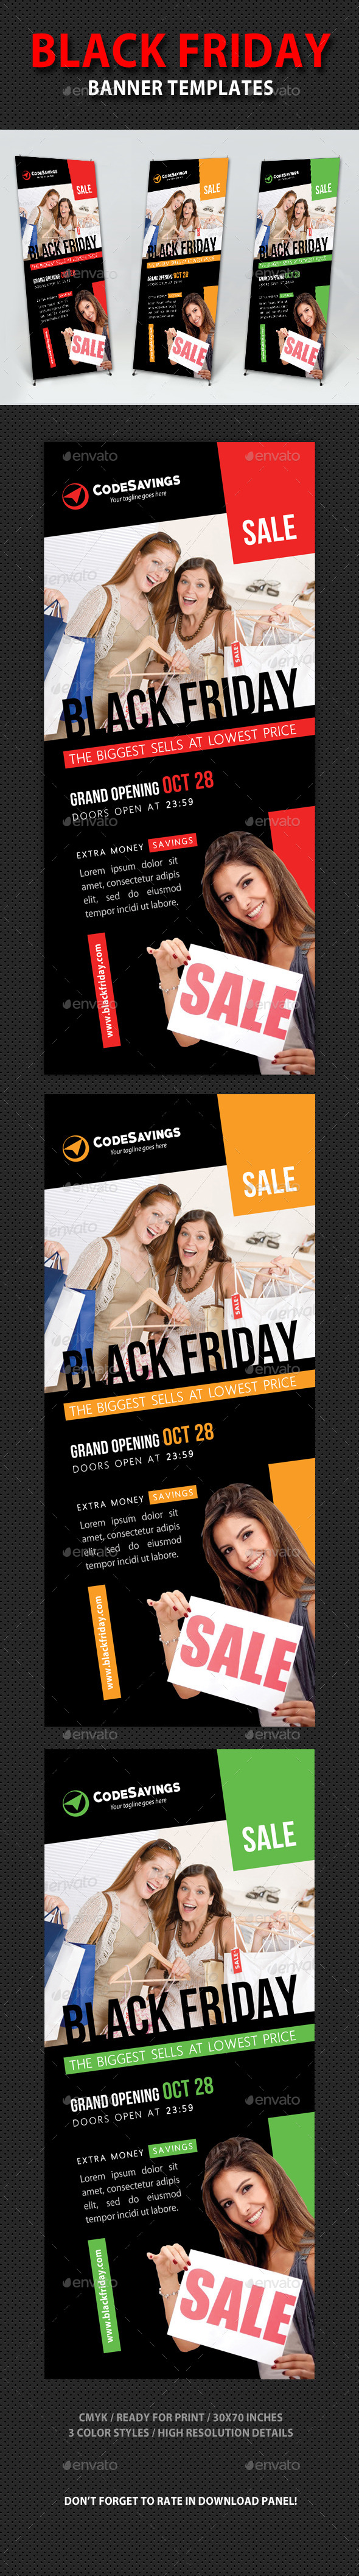 Black Friday Sale Banner Template V03 - Signage Print Templates